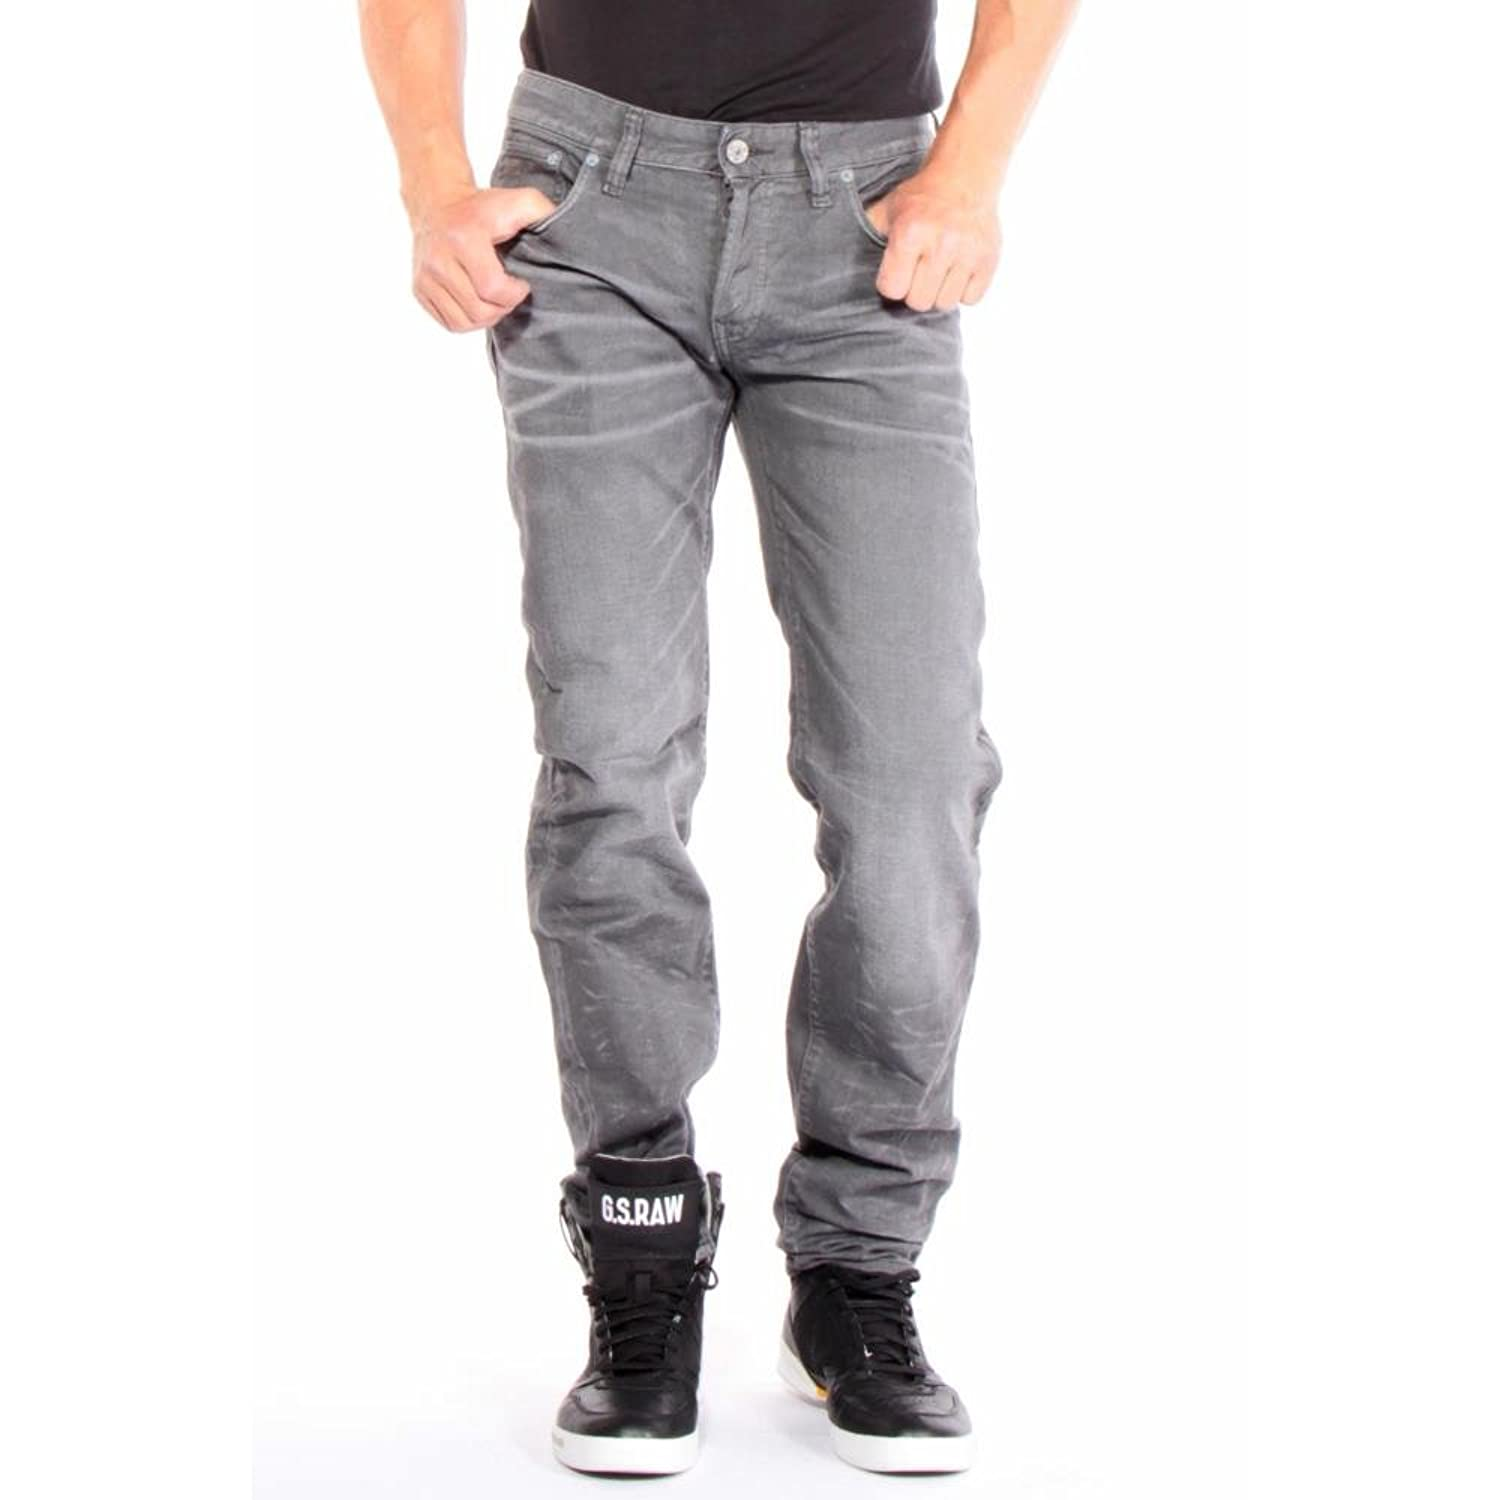 G-star Men's 3301 Low Tapered Jeans